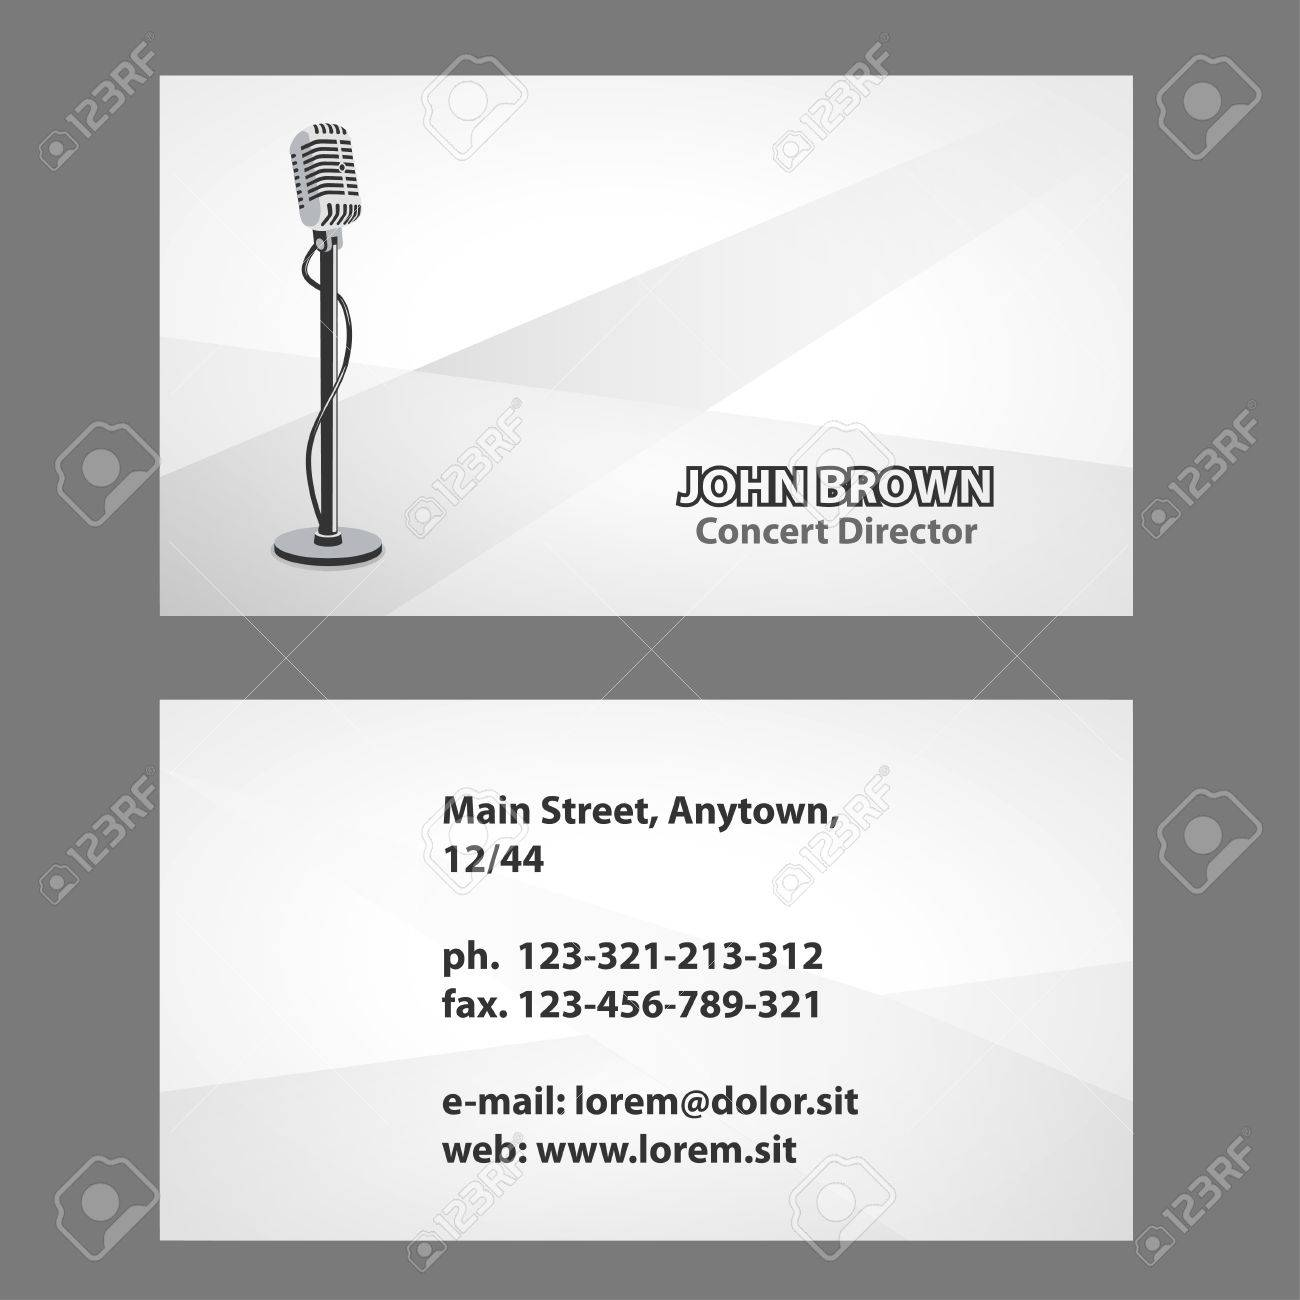 Paladin business card image collections free business cards actor business cards image collections free business cards paladin business card images free business cards actor magicingreecefo Images